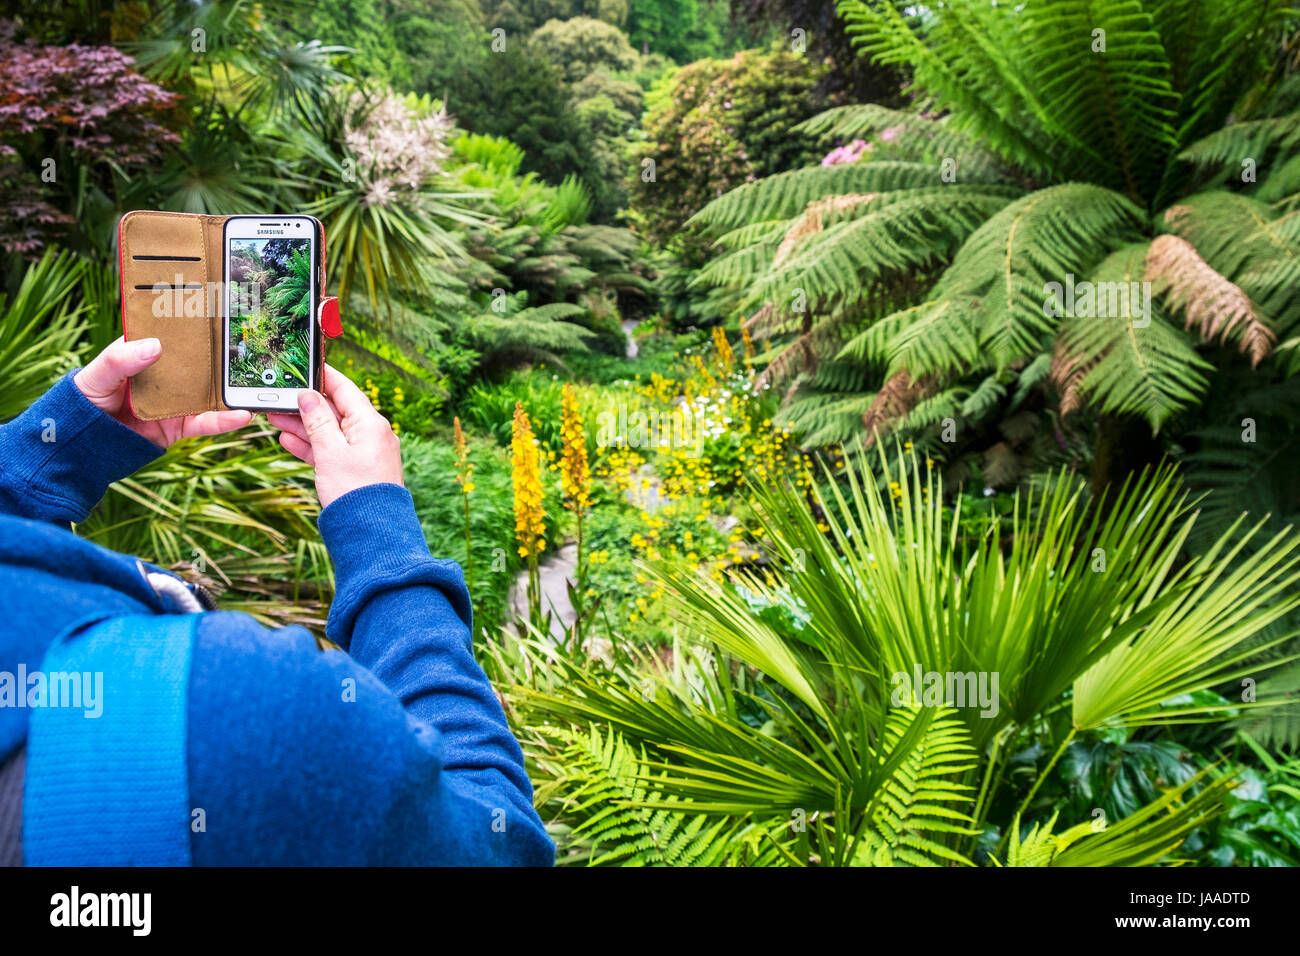 A visitor uses a Samsung mobile phone to photograph plants in Trebah Garden in Cornwall. - Stock Image